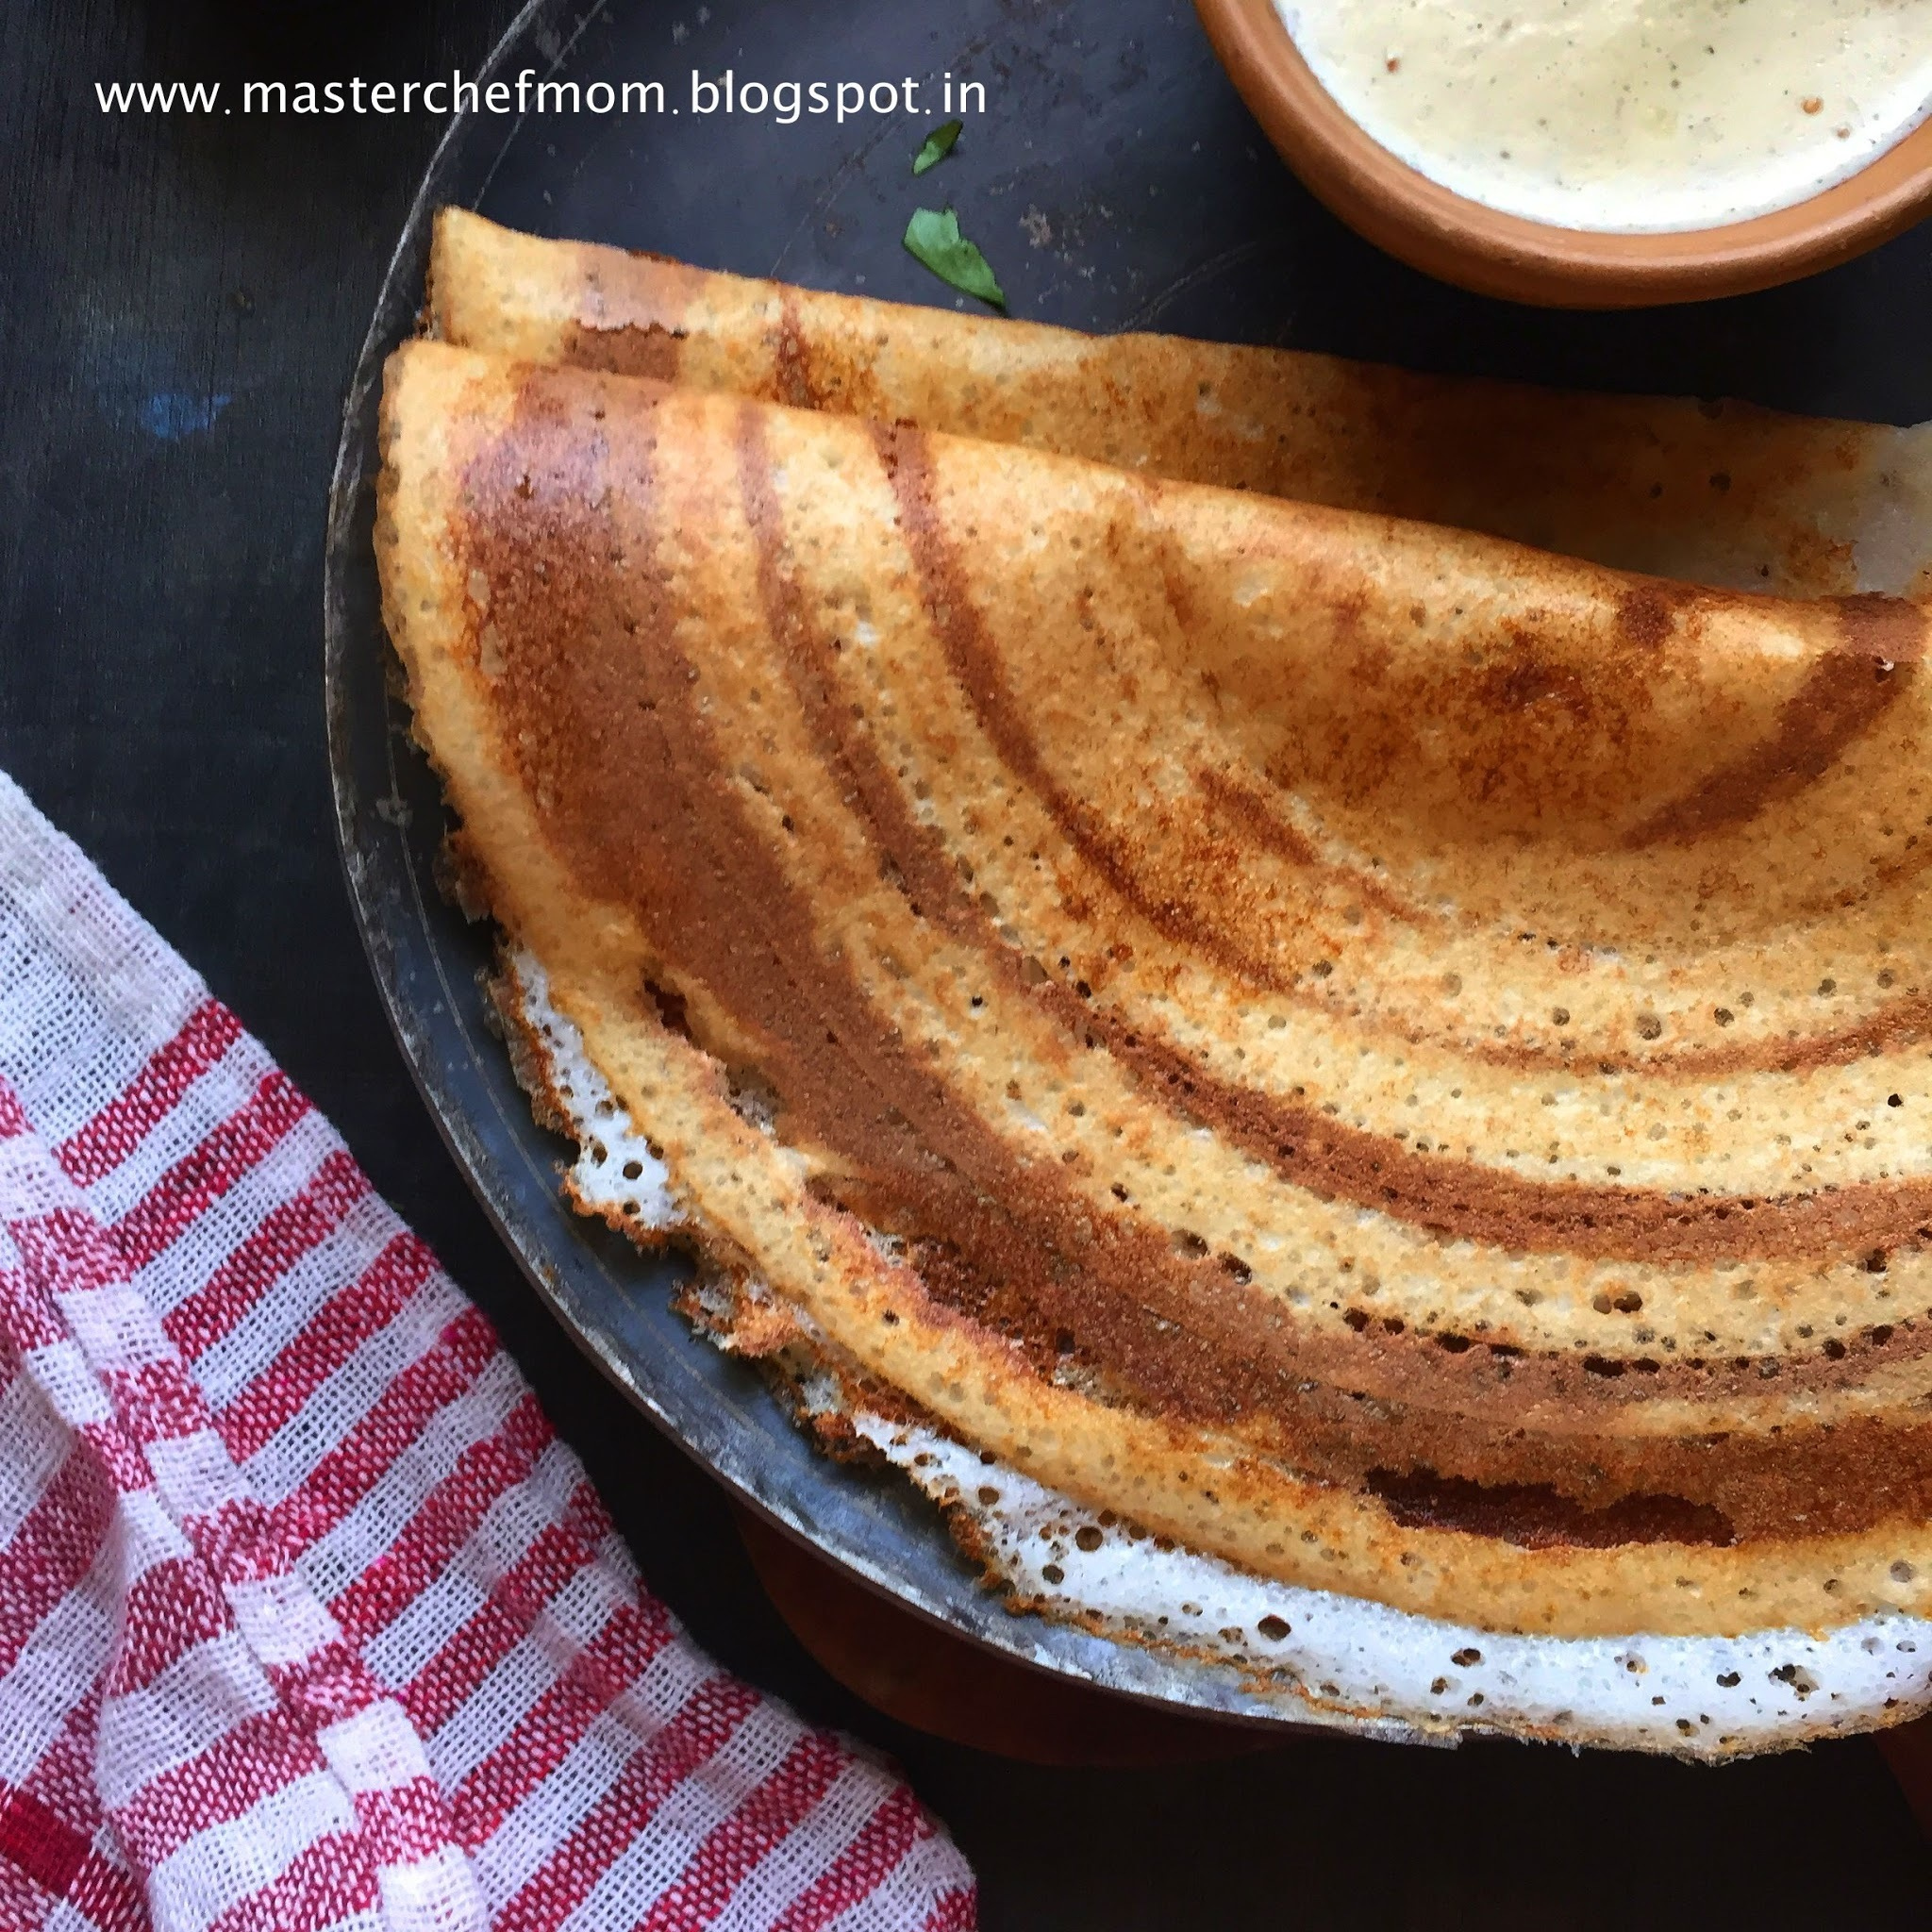 Paper Roast Dosai | How to make Crispy Dosa at Home | Tips and Tricks to make Wafer thin Dosa | Gluten Free Recipe | Breakfast Recipes by Masterchefmom